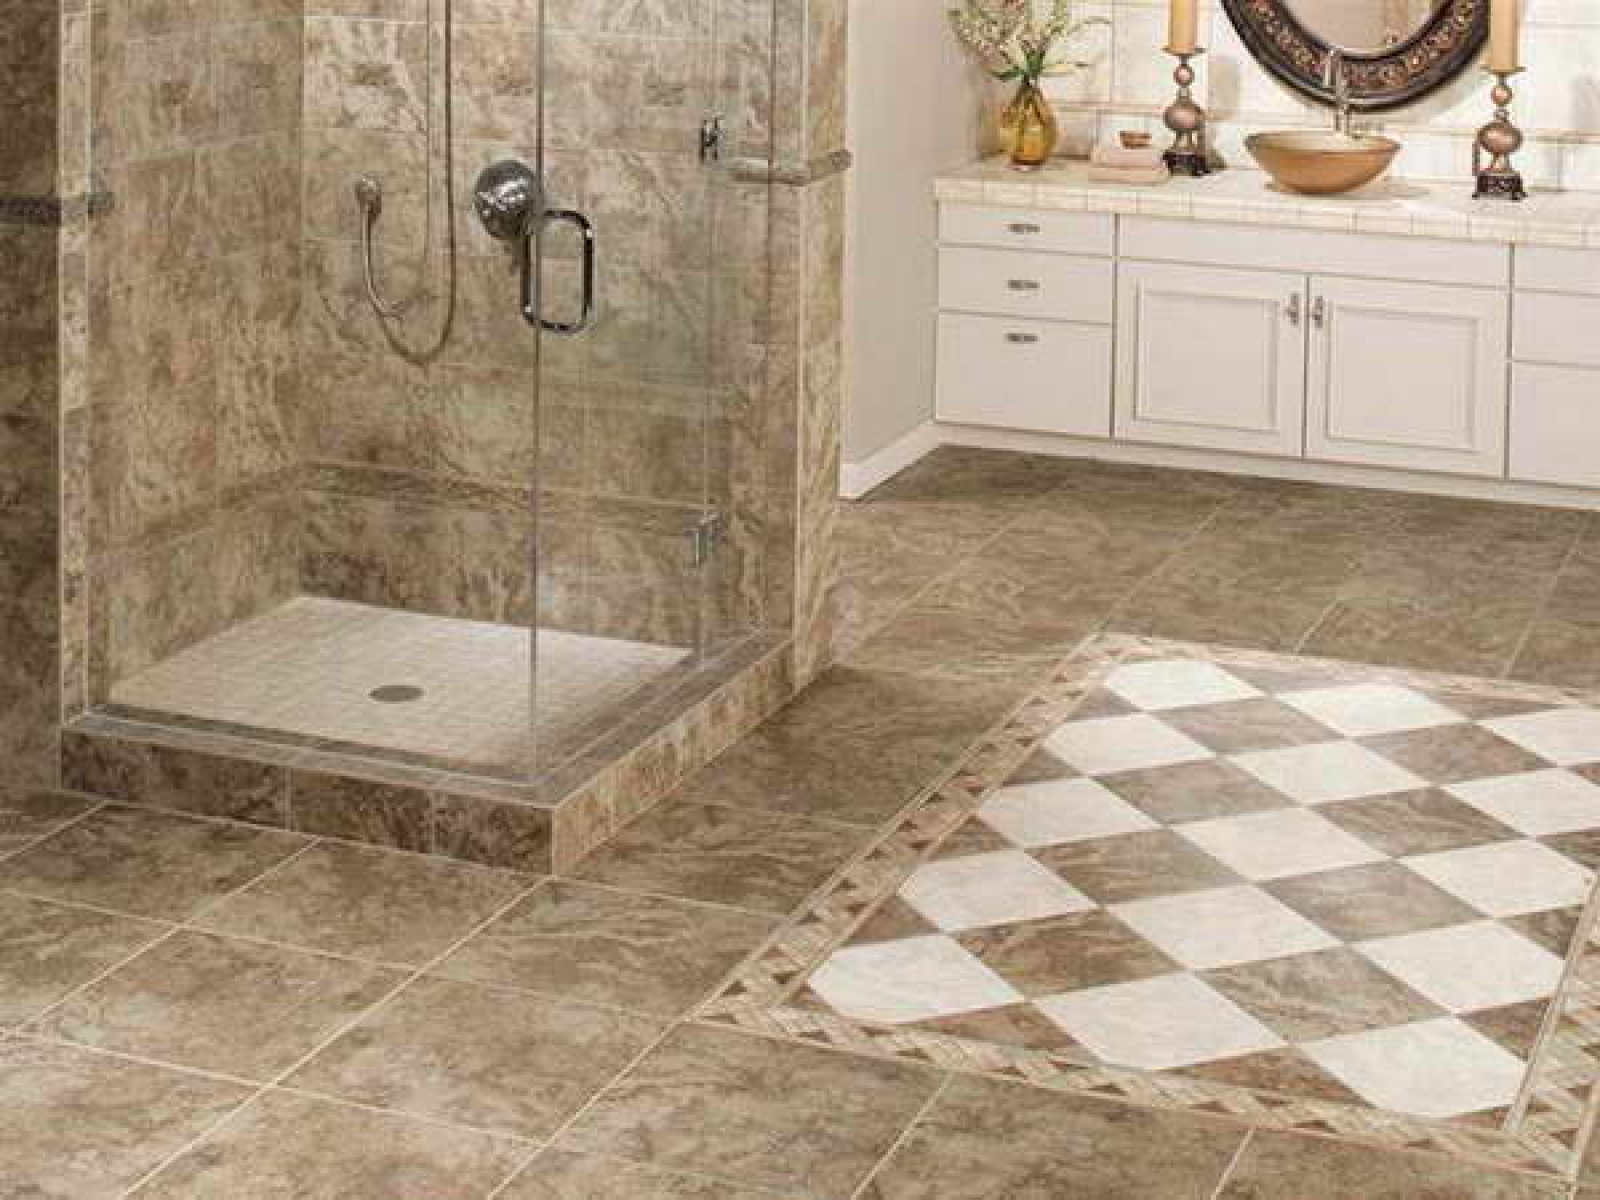 1600x1200 Pictures Of Bathroom Tile Floors With Decorative